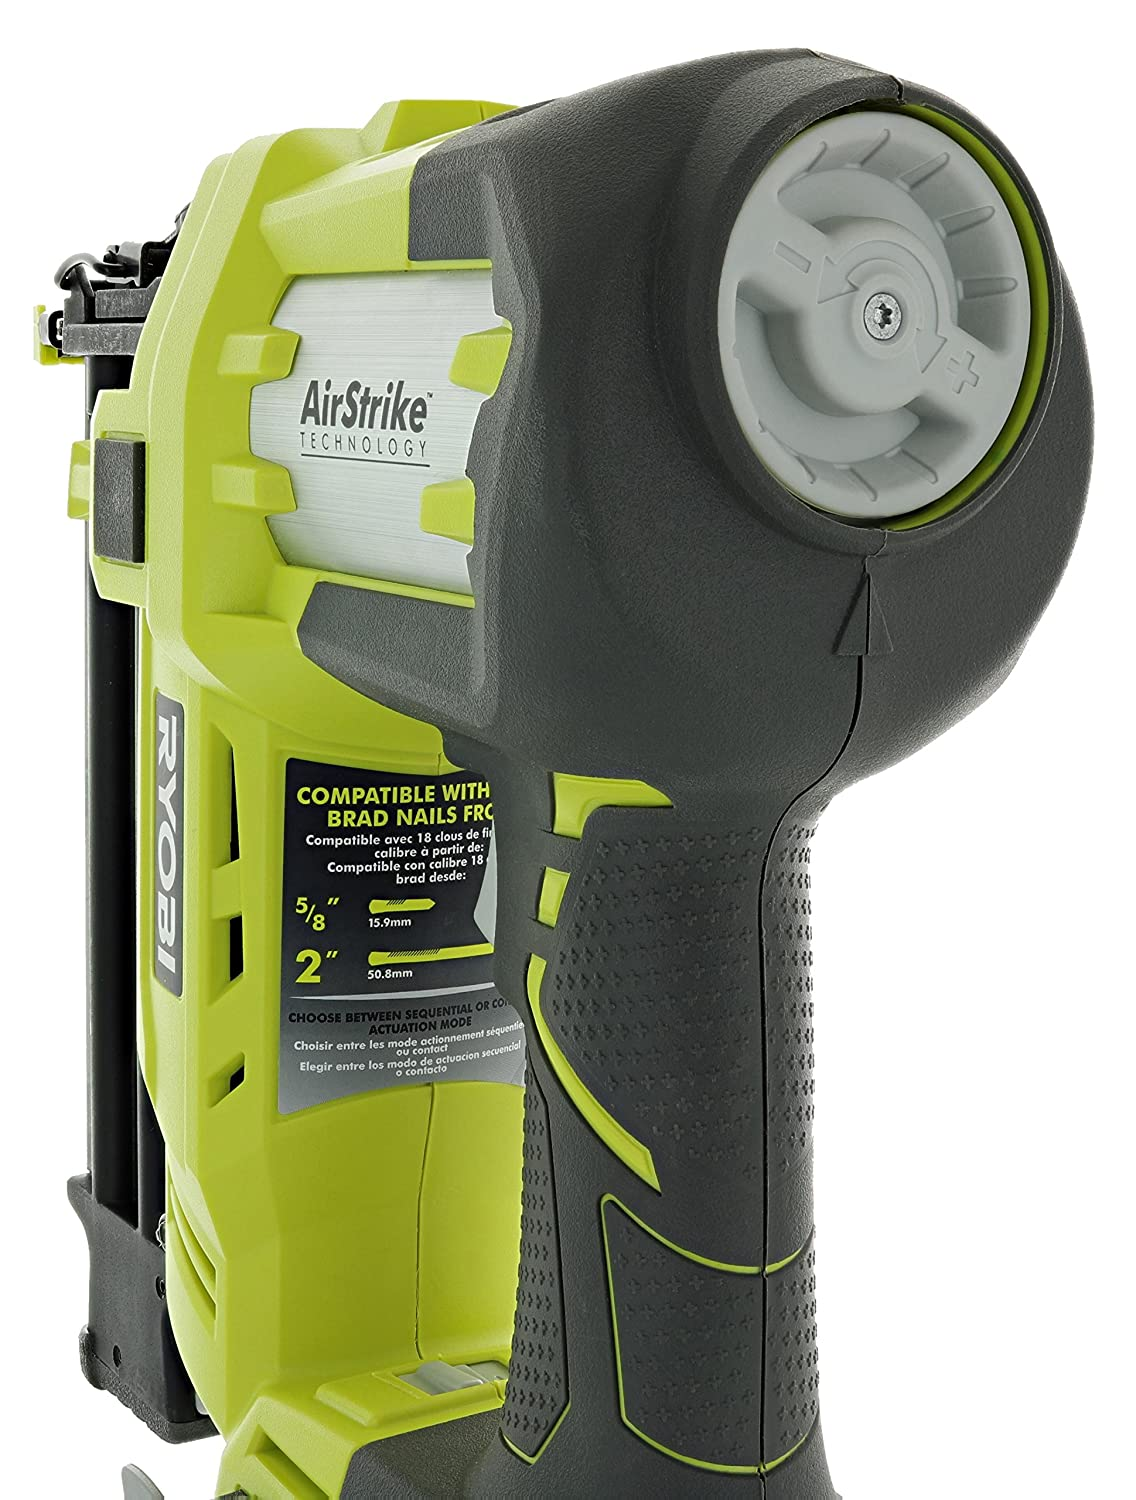 Best Brad Nailer Reviews and Buying Guide 2019 16